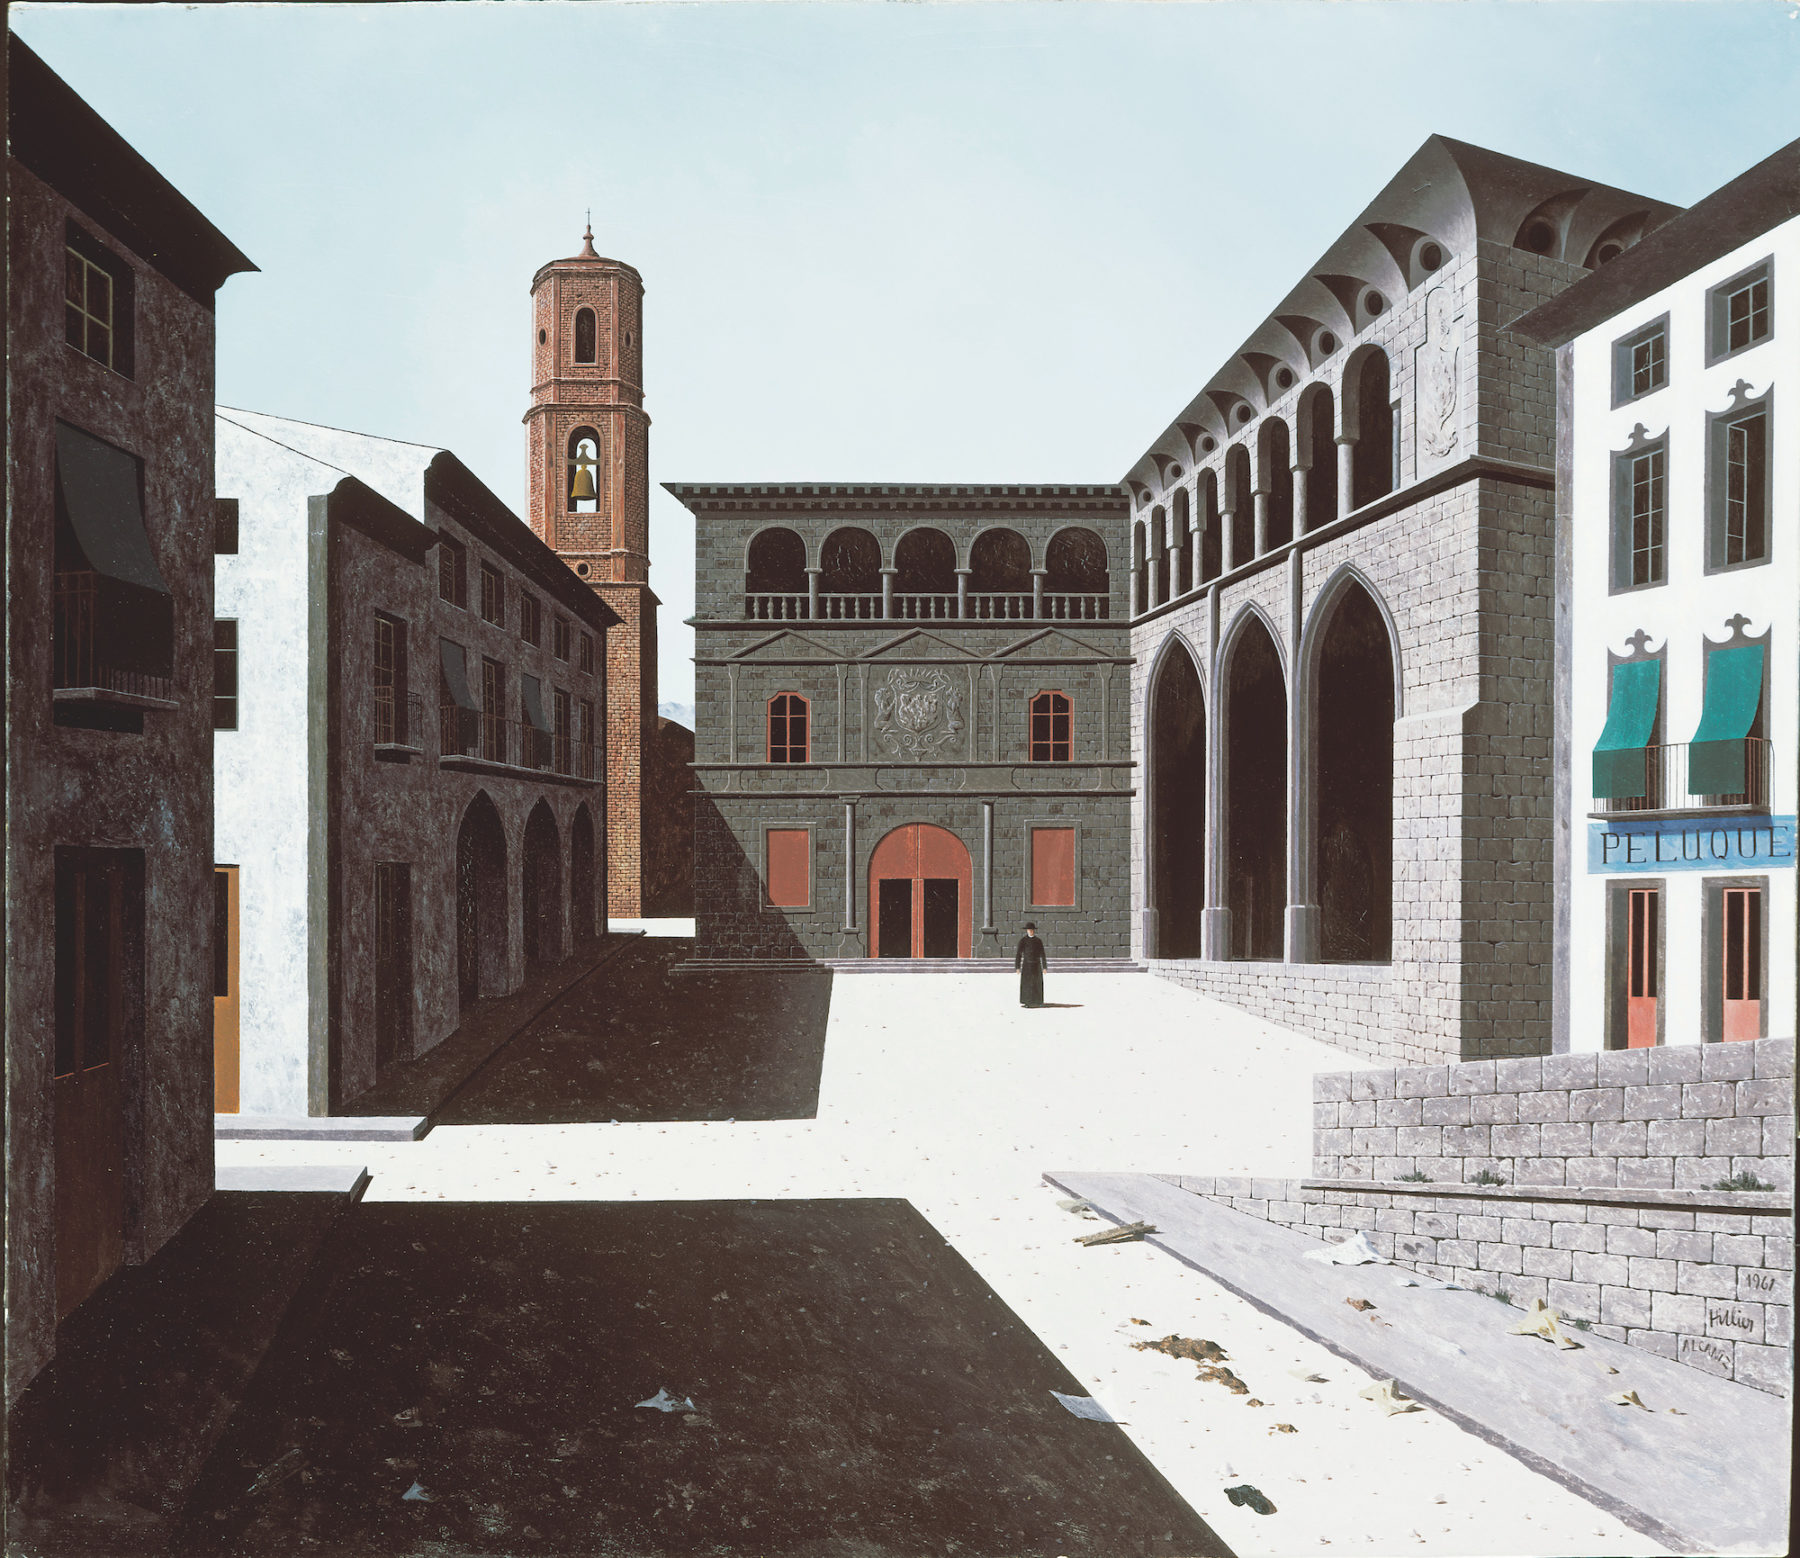 A town piazza lies empty apart from a solitary figure dressed in black. Baroque architectural facades surround the edge of the square. On the right hand side a building has large arches opening up into a dark portico. In the background is a red brick tower. Stark black shadows fall on the piazza from the buildings on the left.